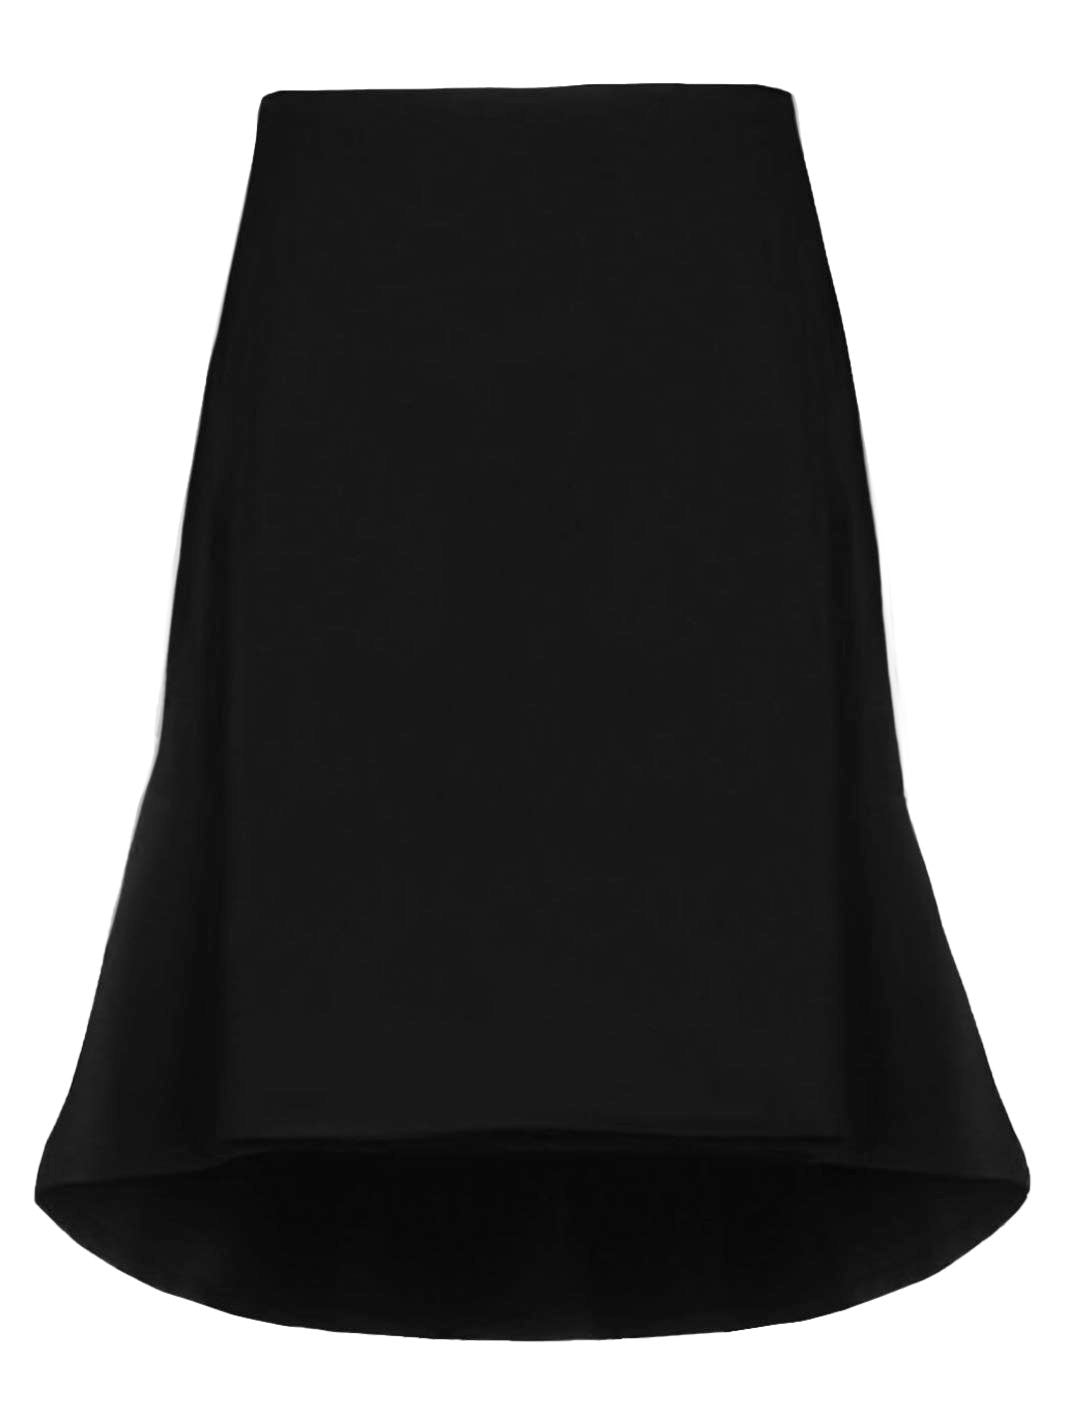 Kick Cotton Skirt - The Bobby Boga